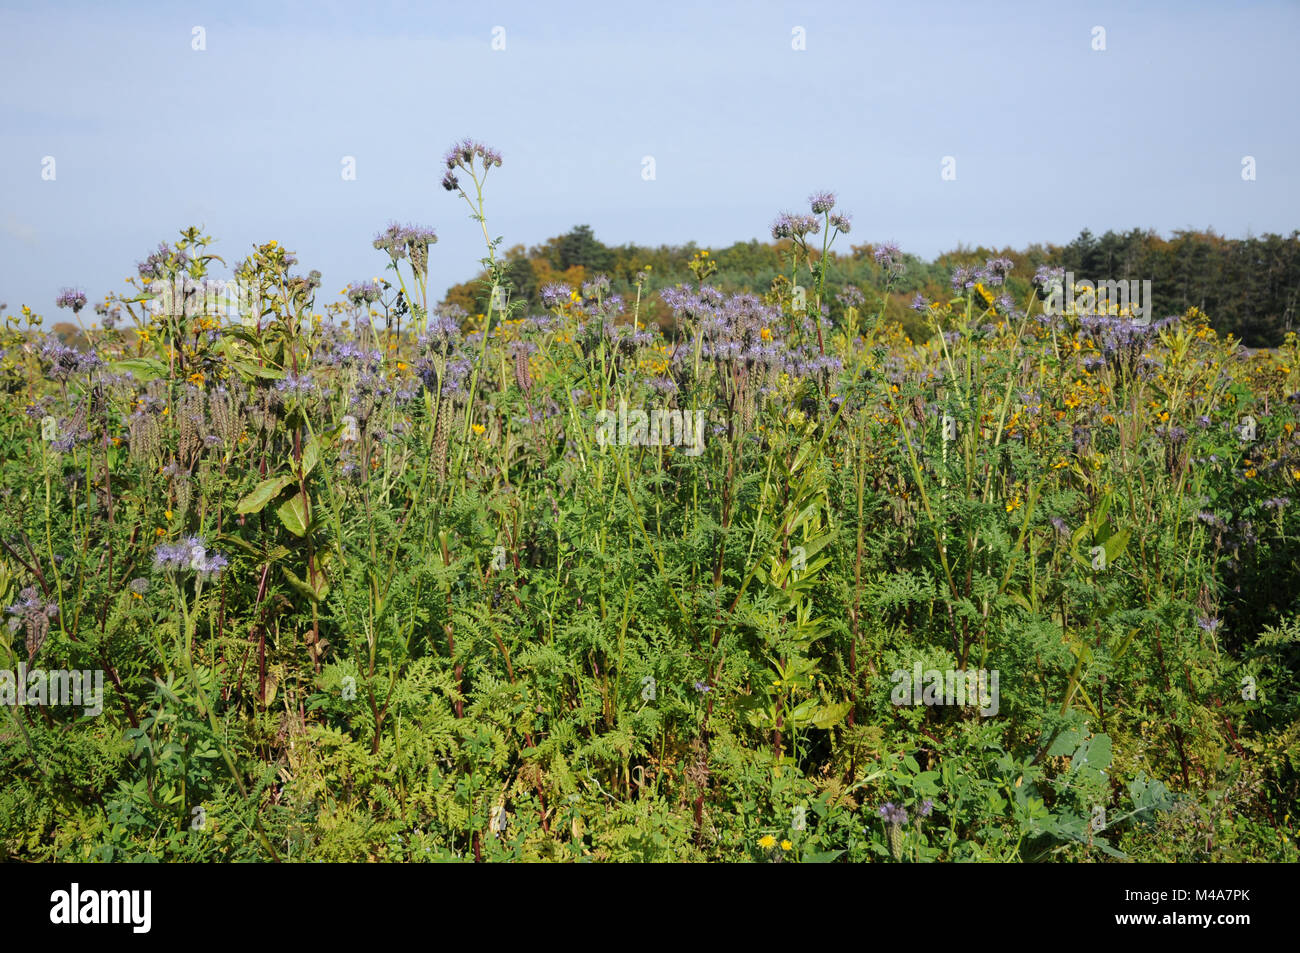 Phacelia tanacetifolia, Scorpion weed, green manure Stock Photo